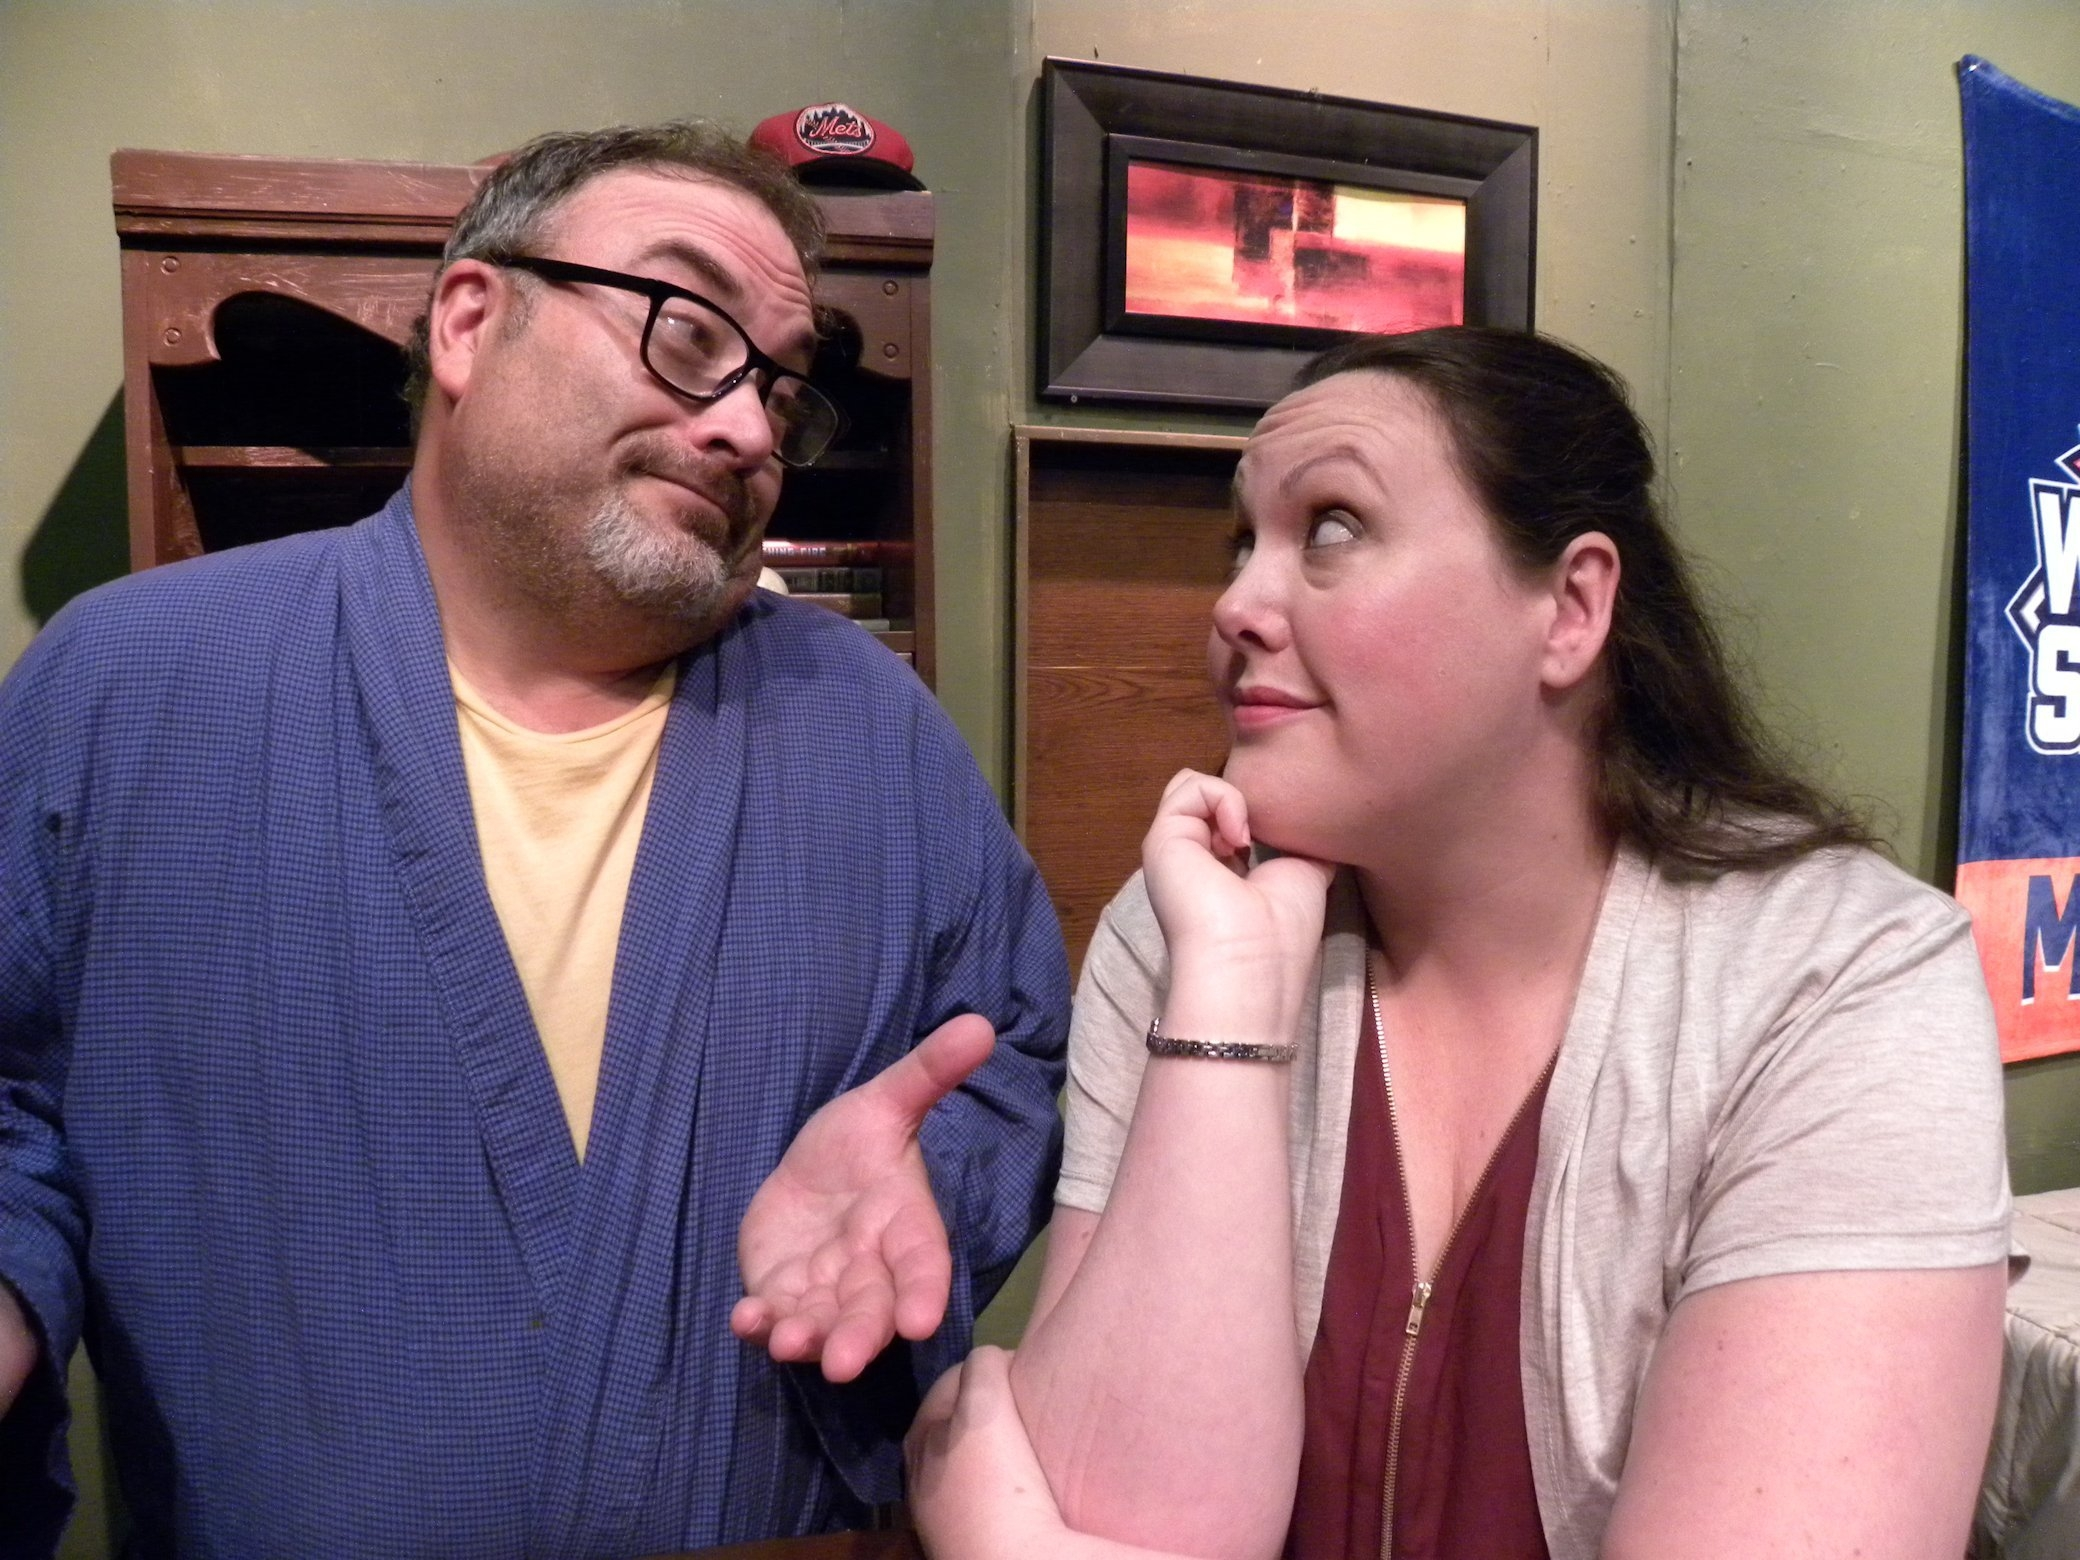 David C. Mitchell and Melissa Leventhal star in 'Dear Lydia' at Alleyway Theatre.